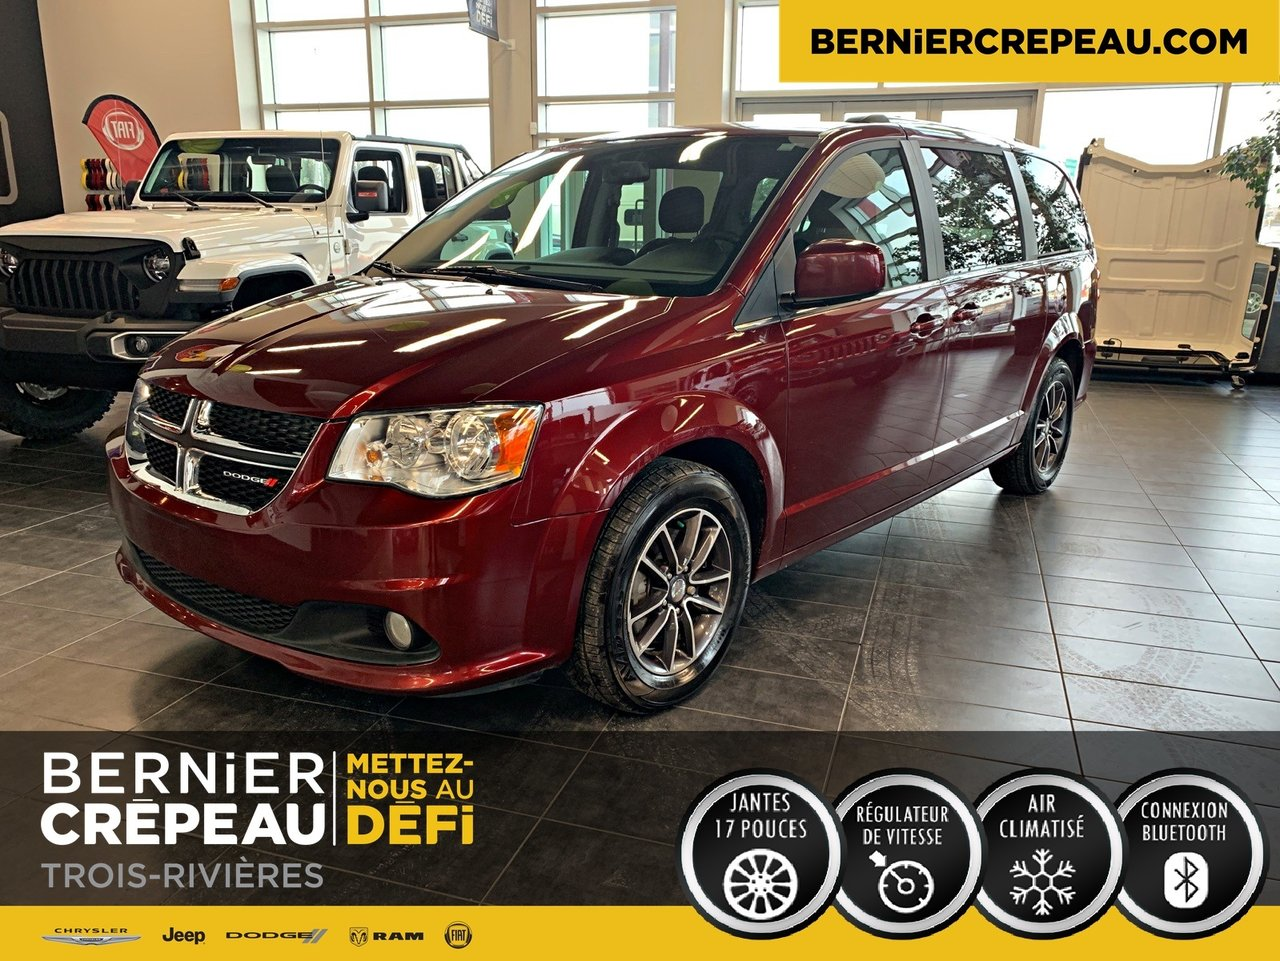 2017 Dodge  Grand Caravan SXT PREMIUM PLUS / BLUETOOTH STOW N GO